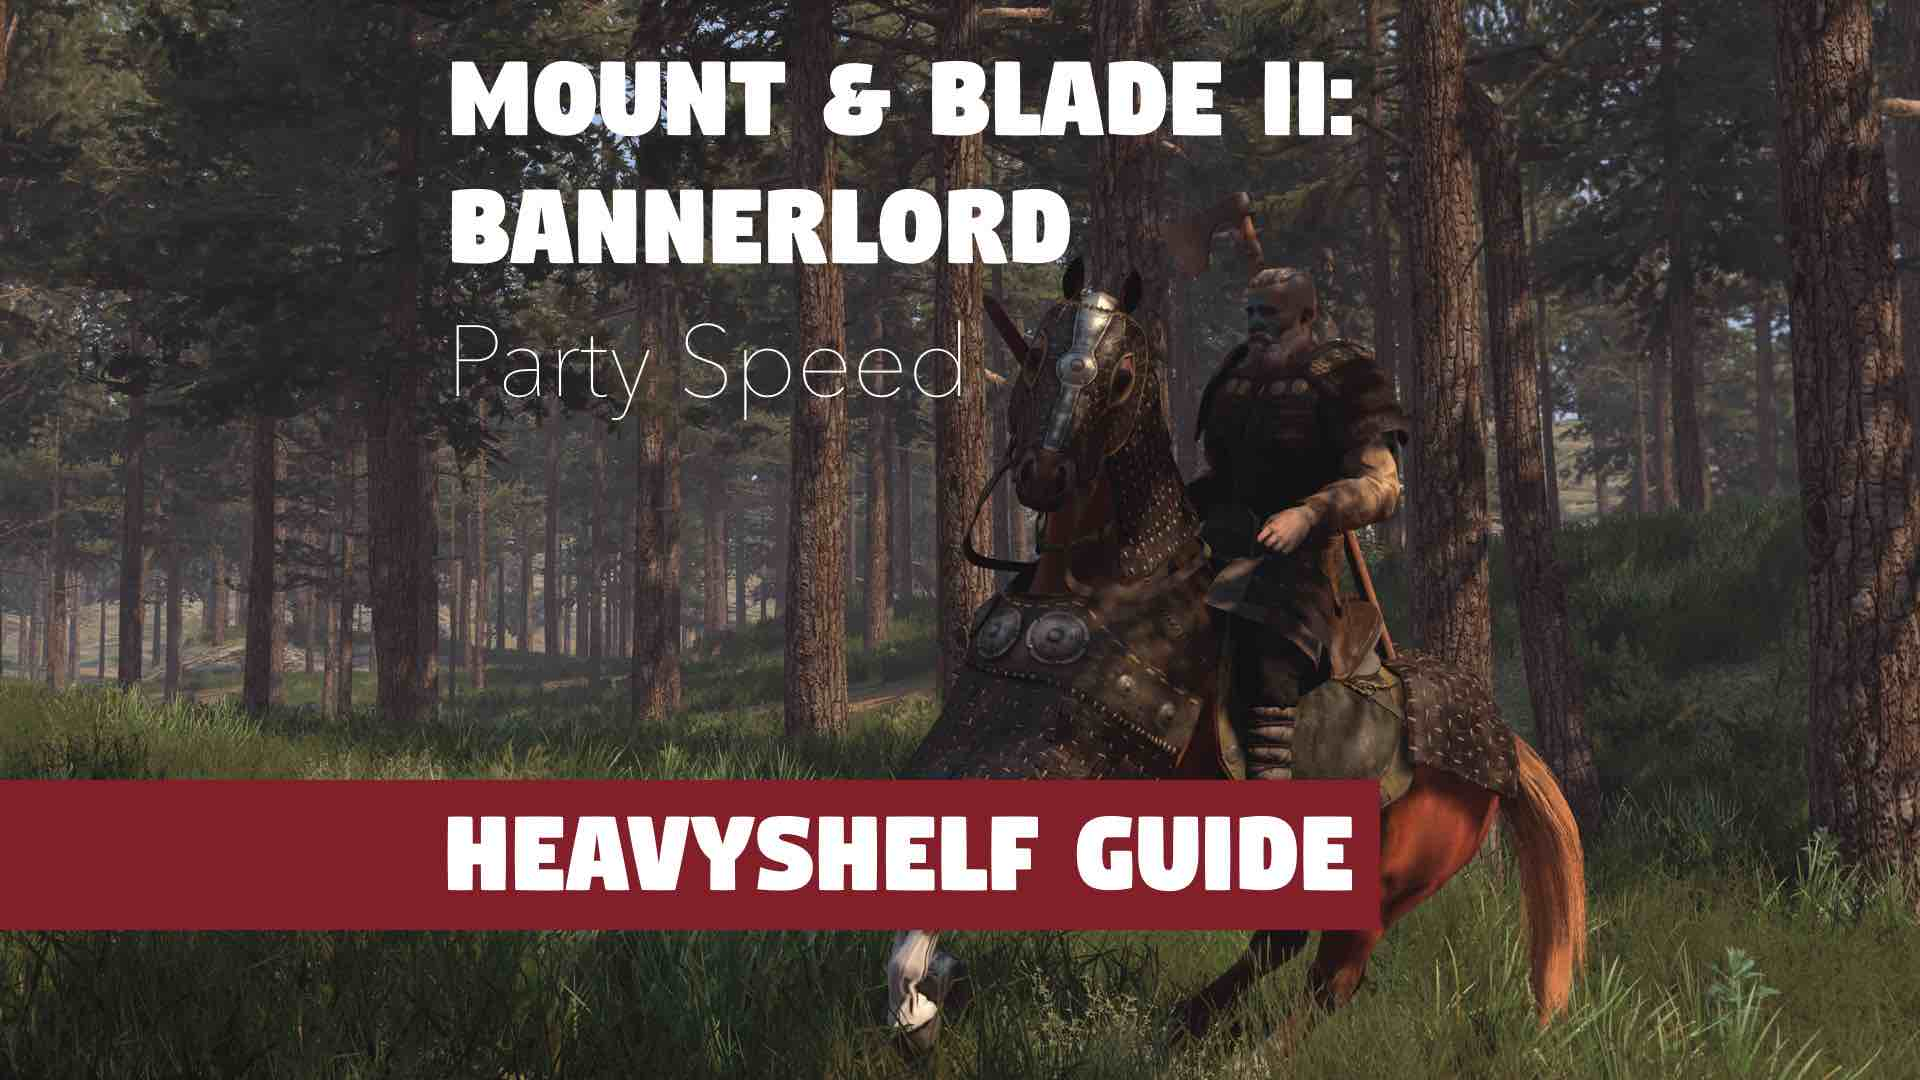 Mount and Blade II: Bannerlord Party Speed Guide